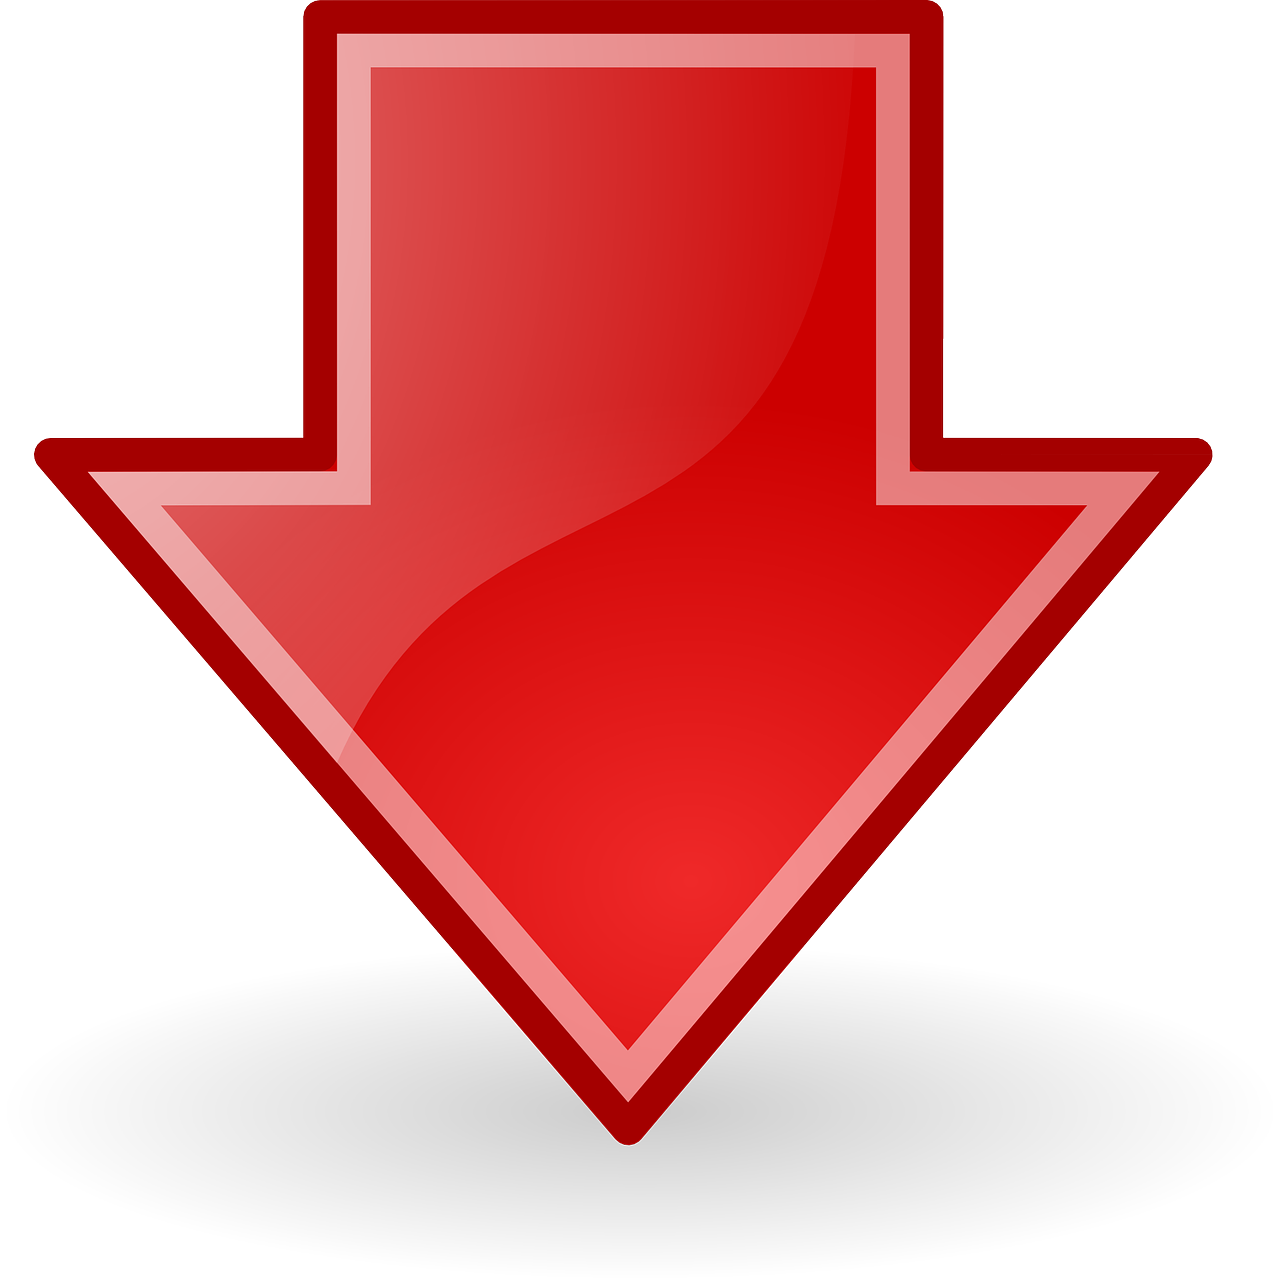 Arrow png red. Arrows down download glossy